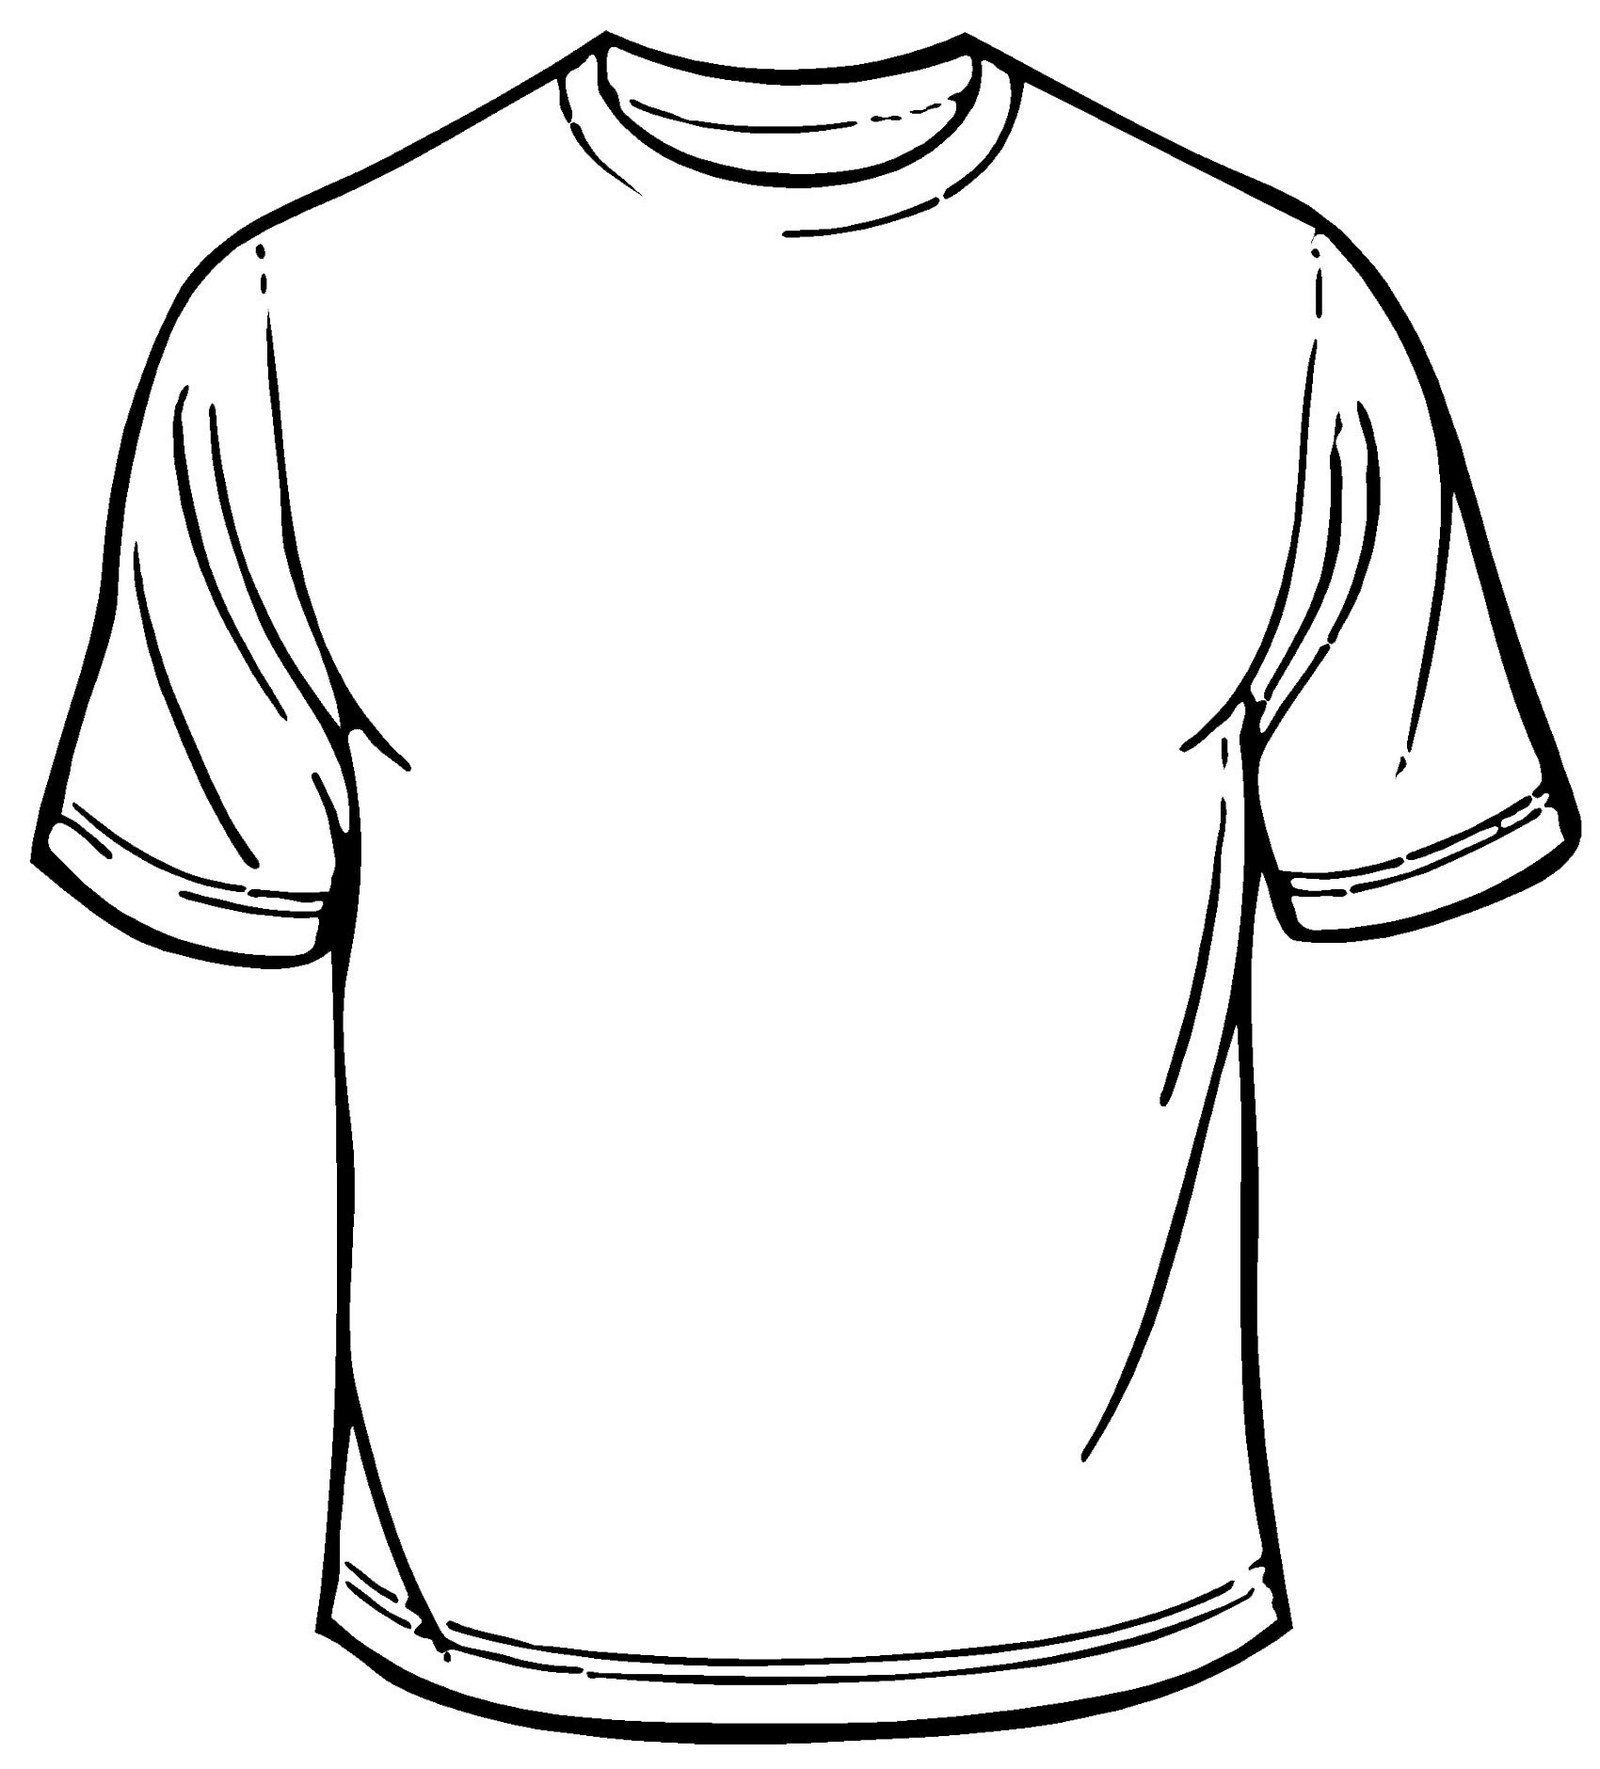 coloring pages of a shirt | blank t shirt coloring sheet printable